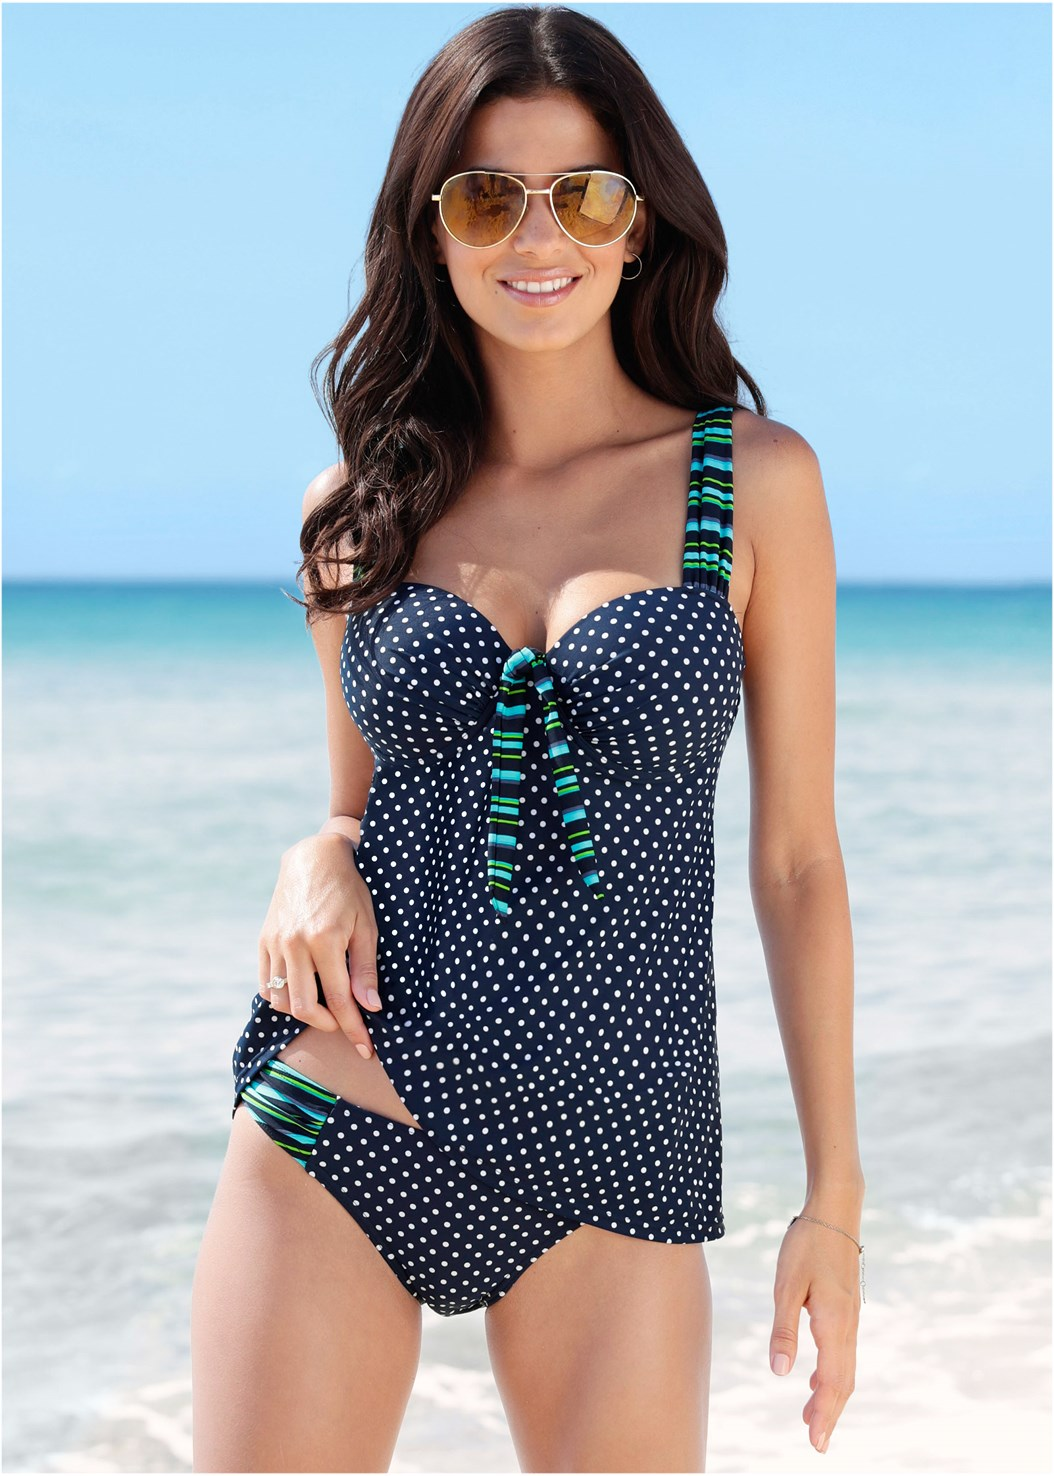 Dotted Bikini Bottoms,Dotted Tankini Swim Top,Flirty Romper Cover-Up